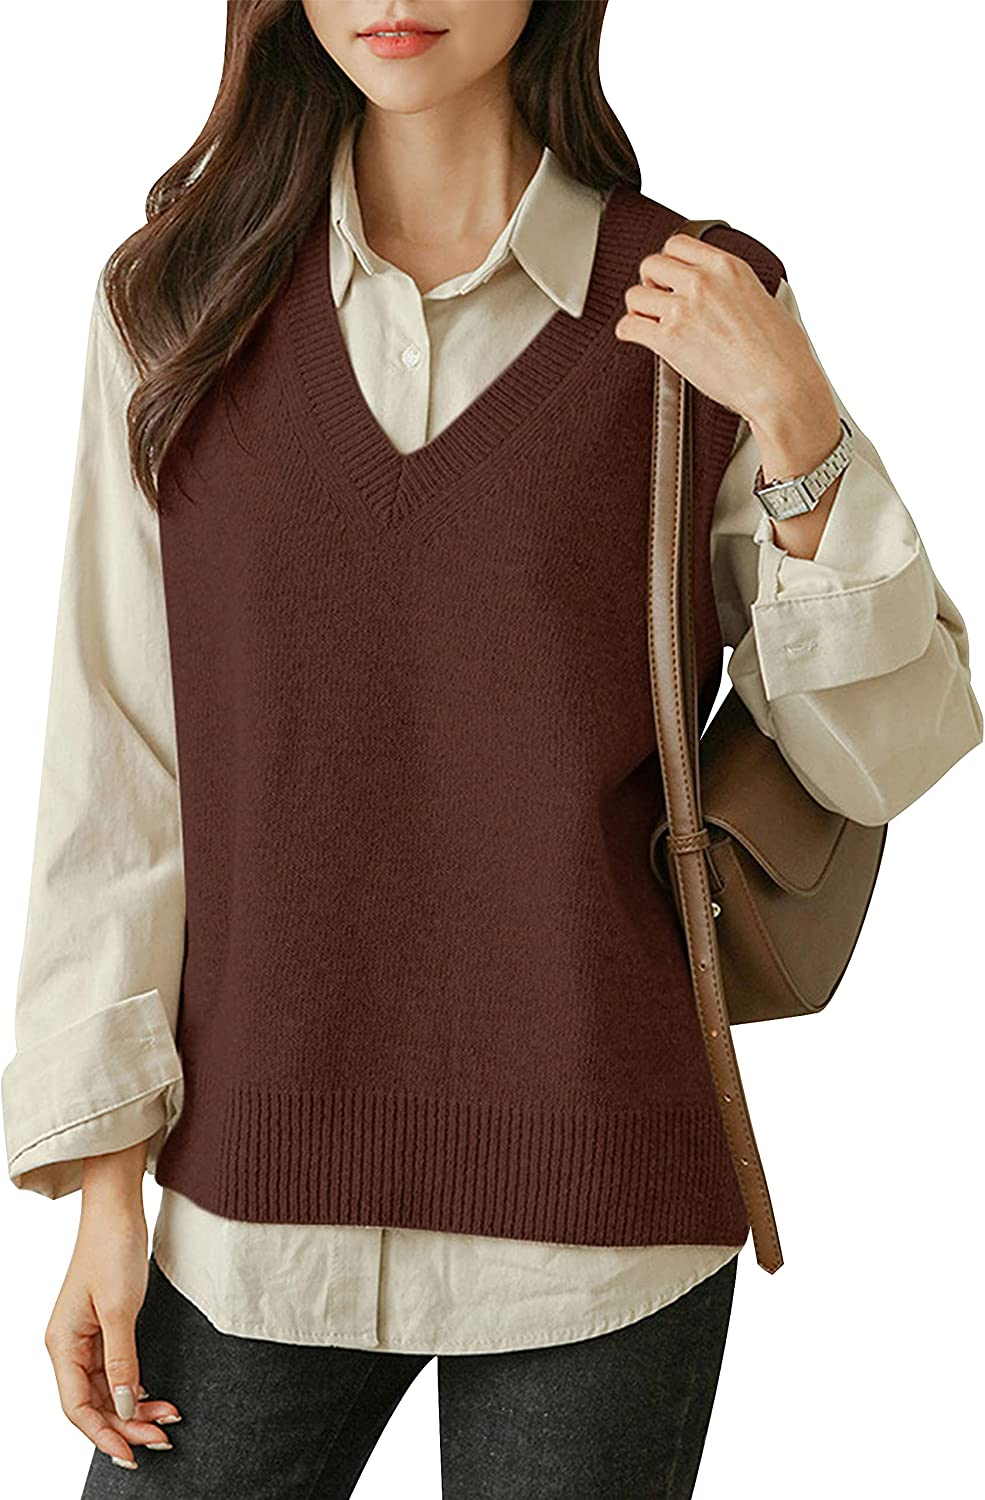 UANEO Womens Casual Cable Knit V Neck Sleeveless Pullovers Sweater Vests Overshirts (Brown-L)